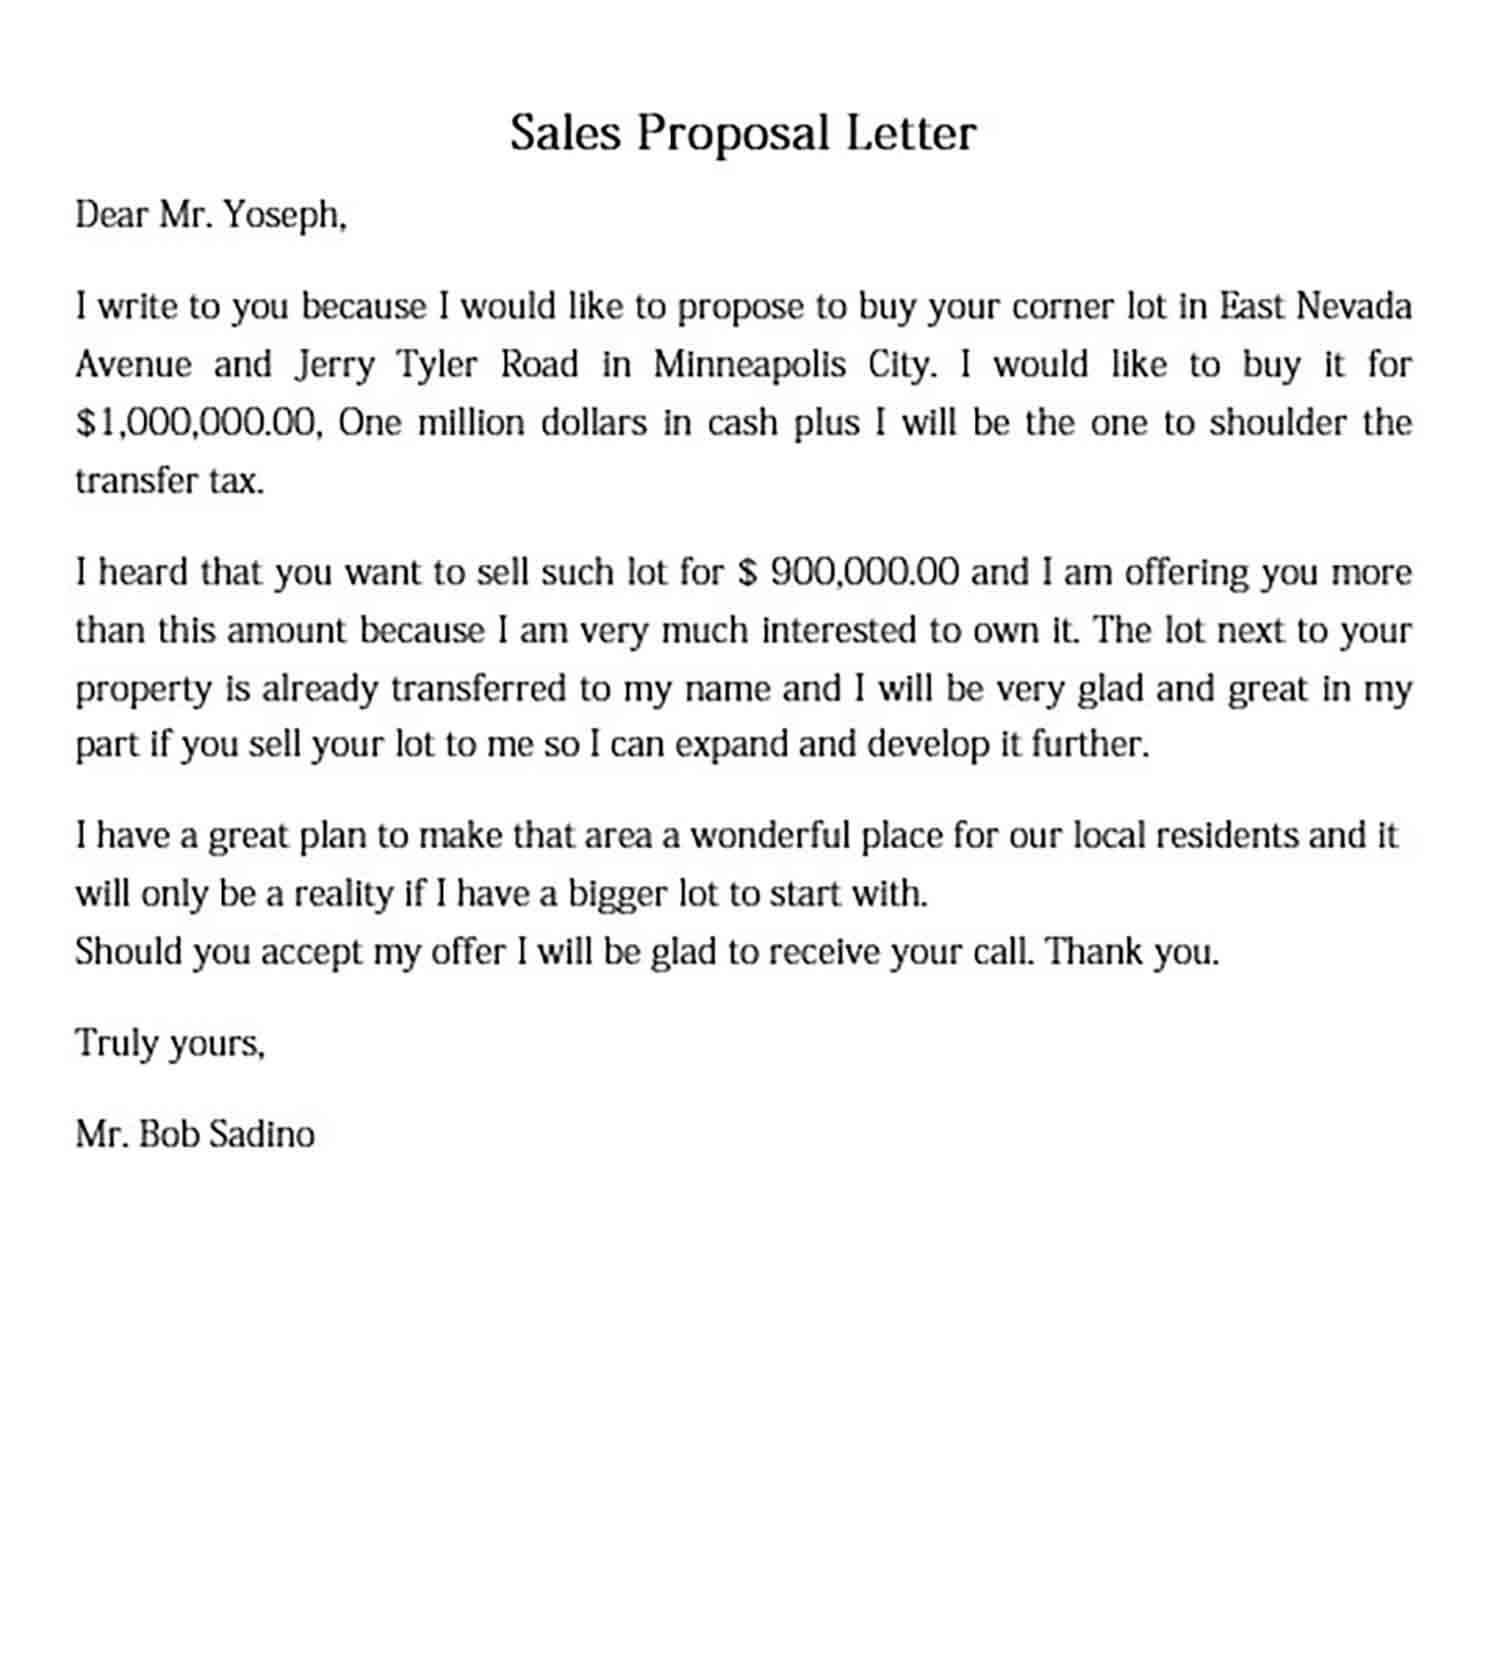 Sales Proposal Letter to